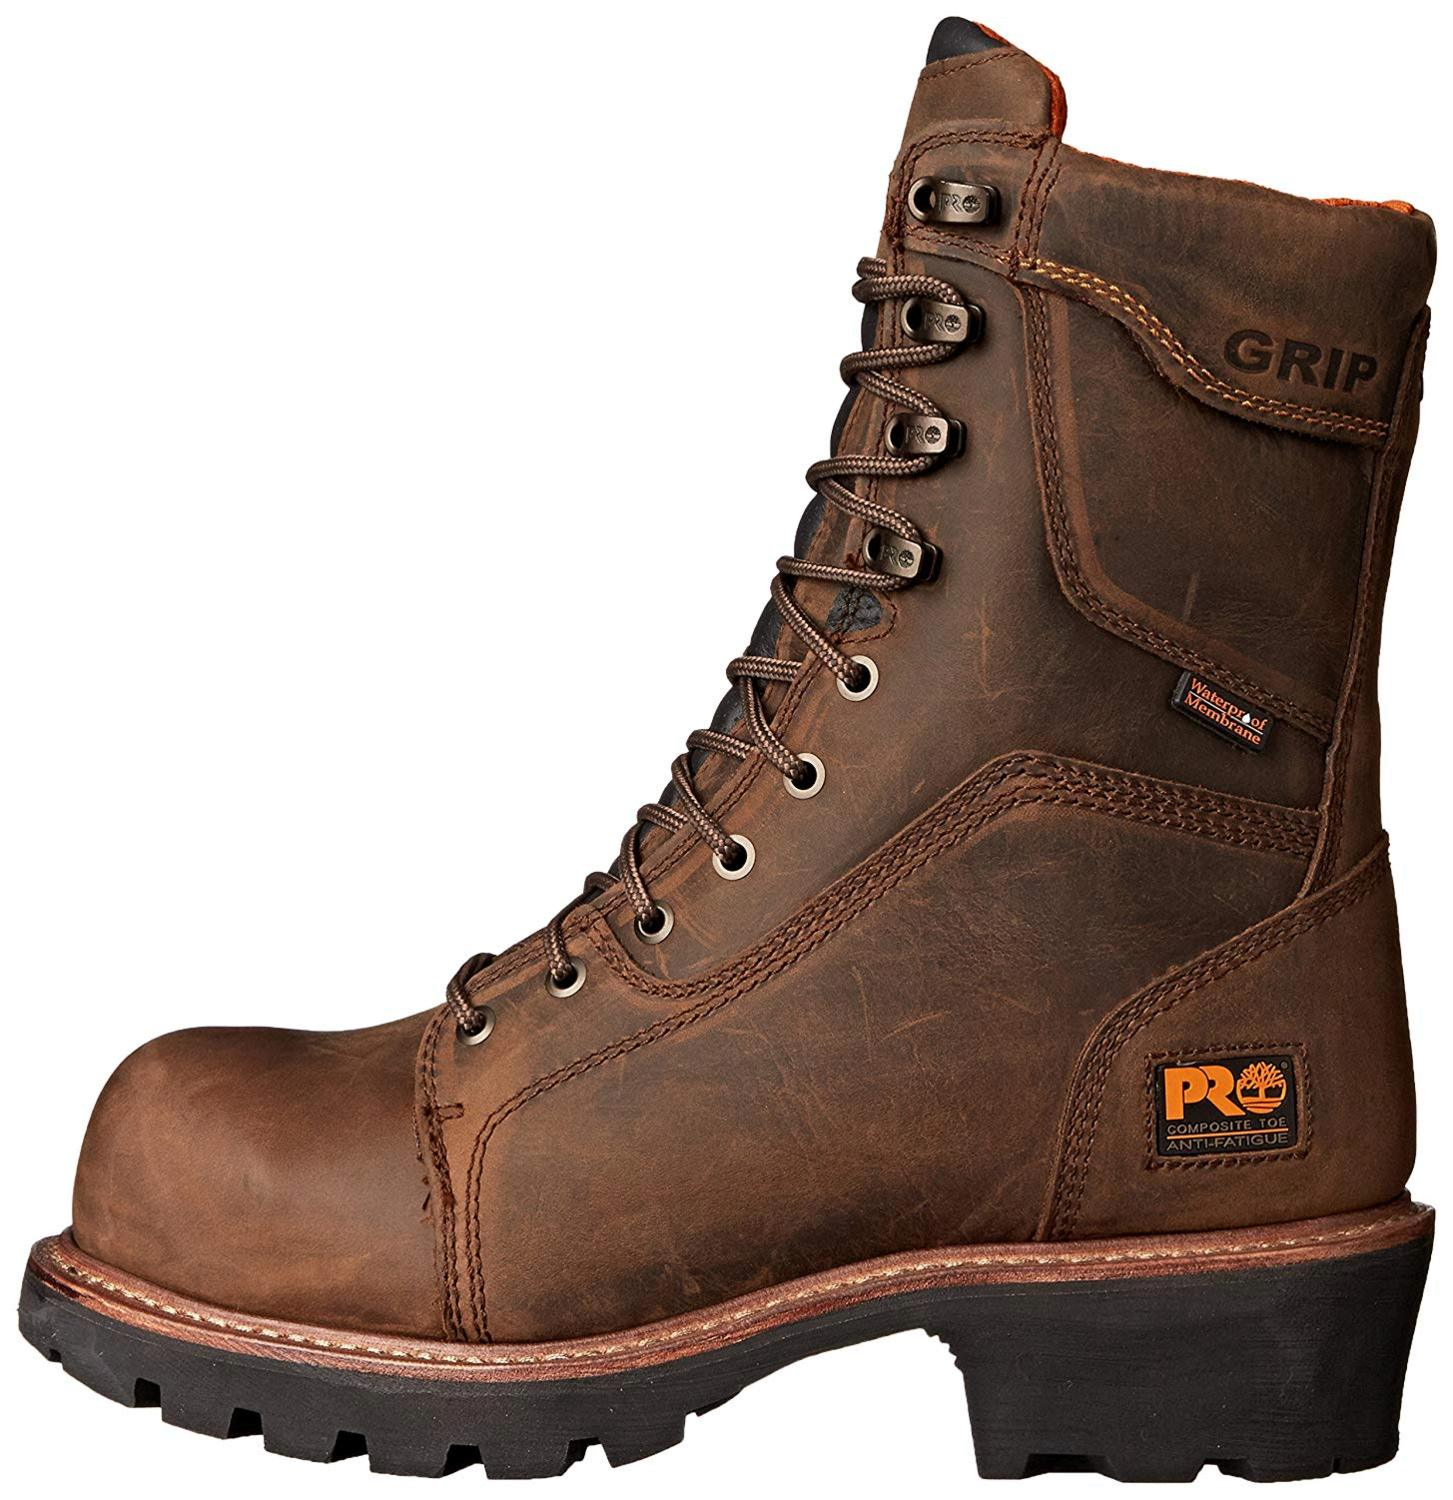 99a4b0968a3 Details about Timberland PRO Men's Rip Saw 9